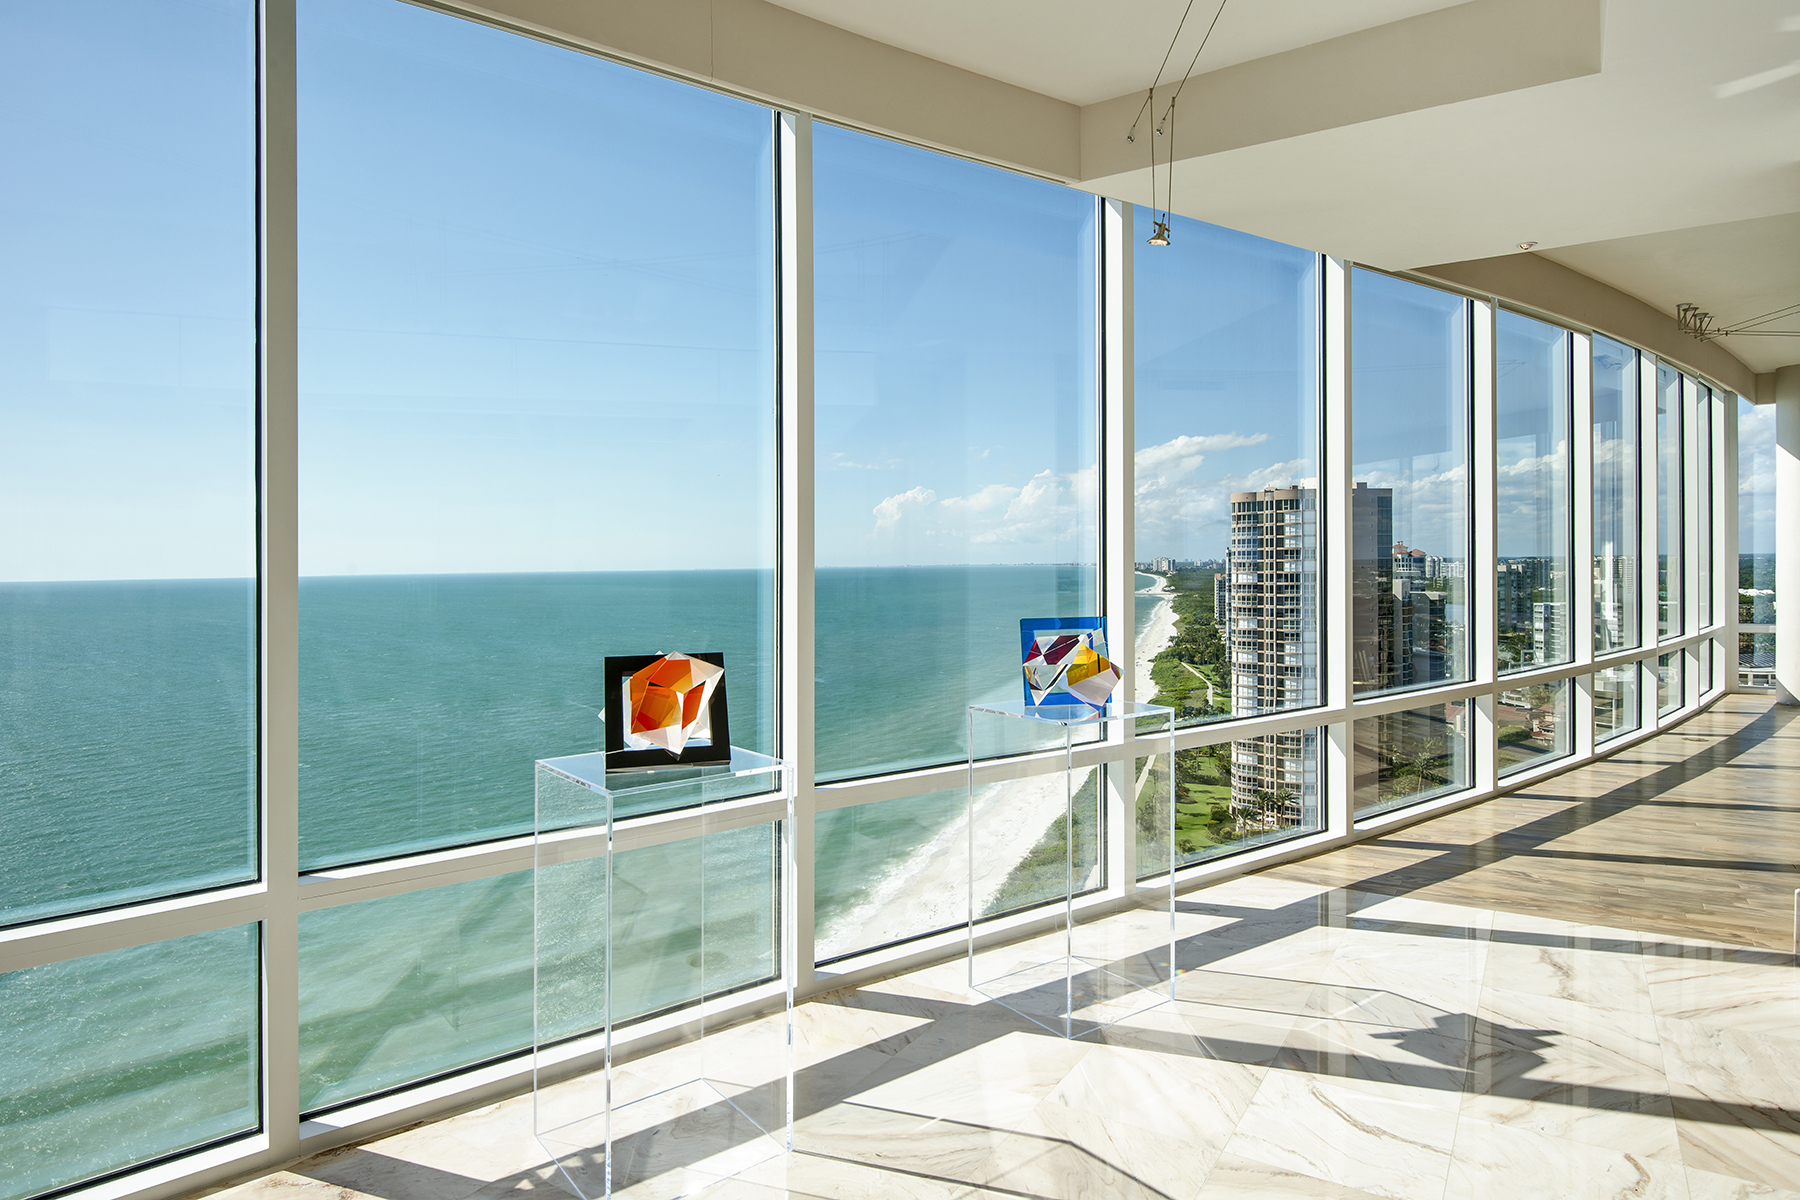 Condominium for Sale at PARK SHORE - LE RIVAGE 4351 Gulf Shore Blvd N PH-5 Naples, Florida 34103 United States